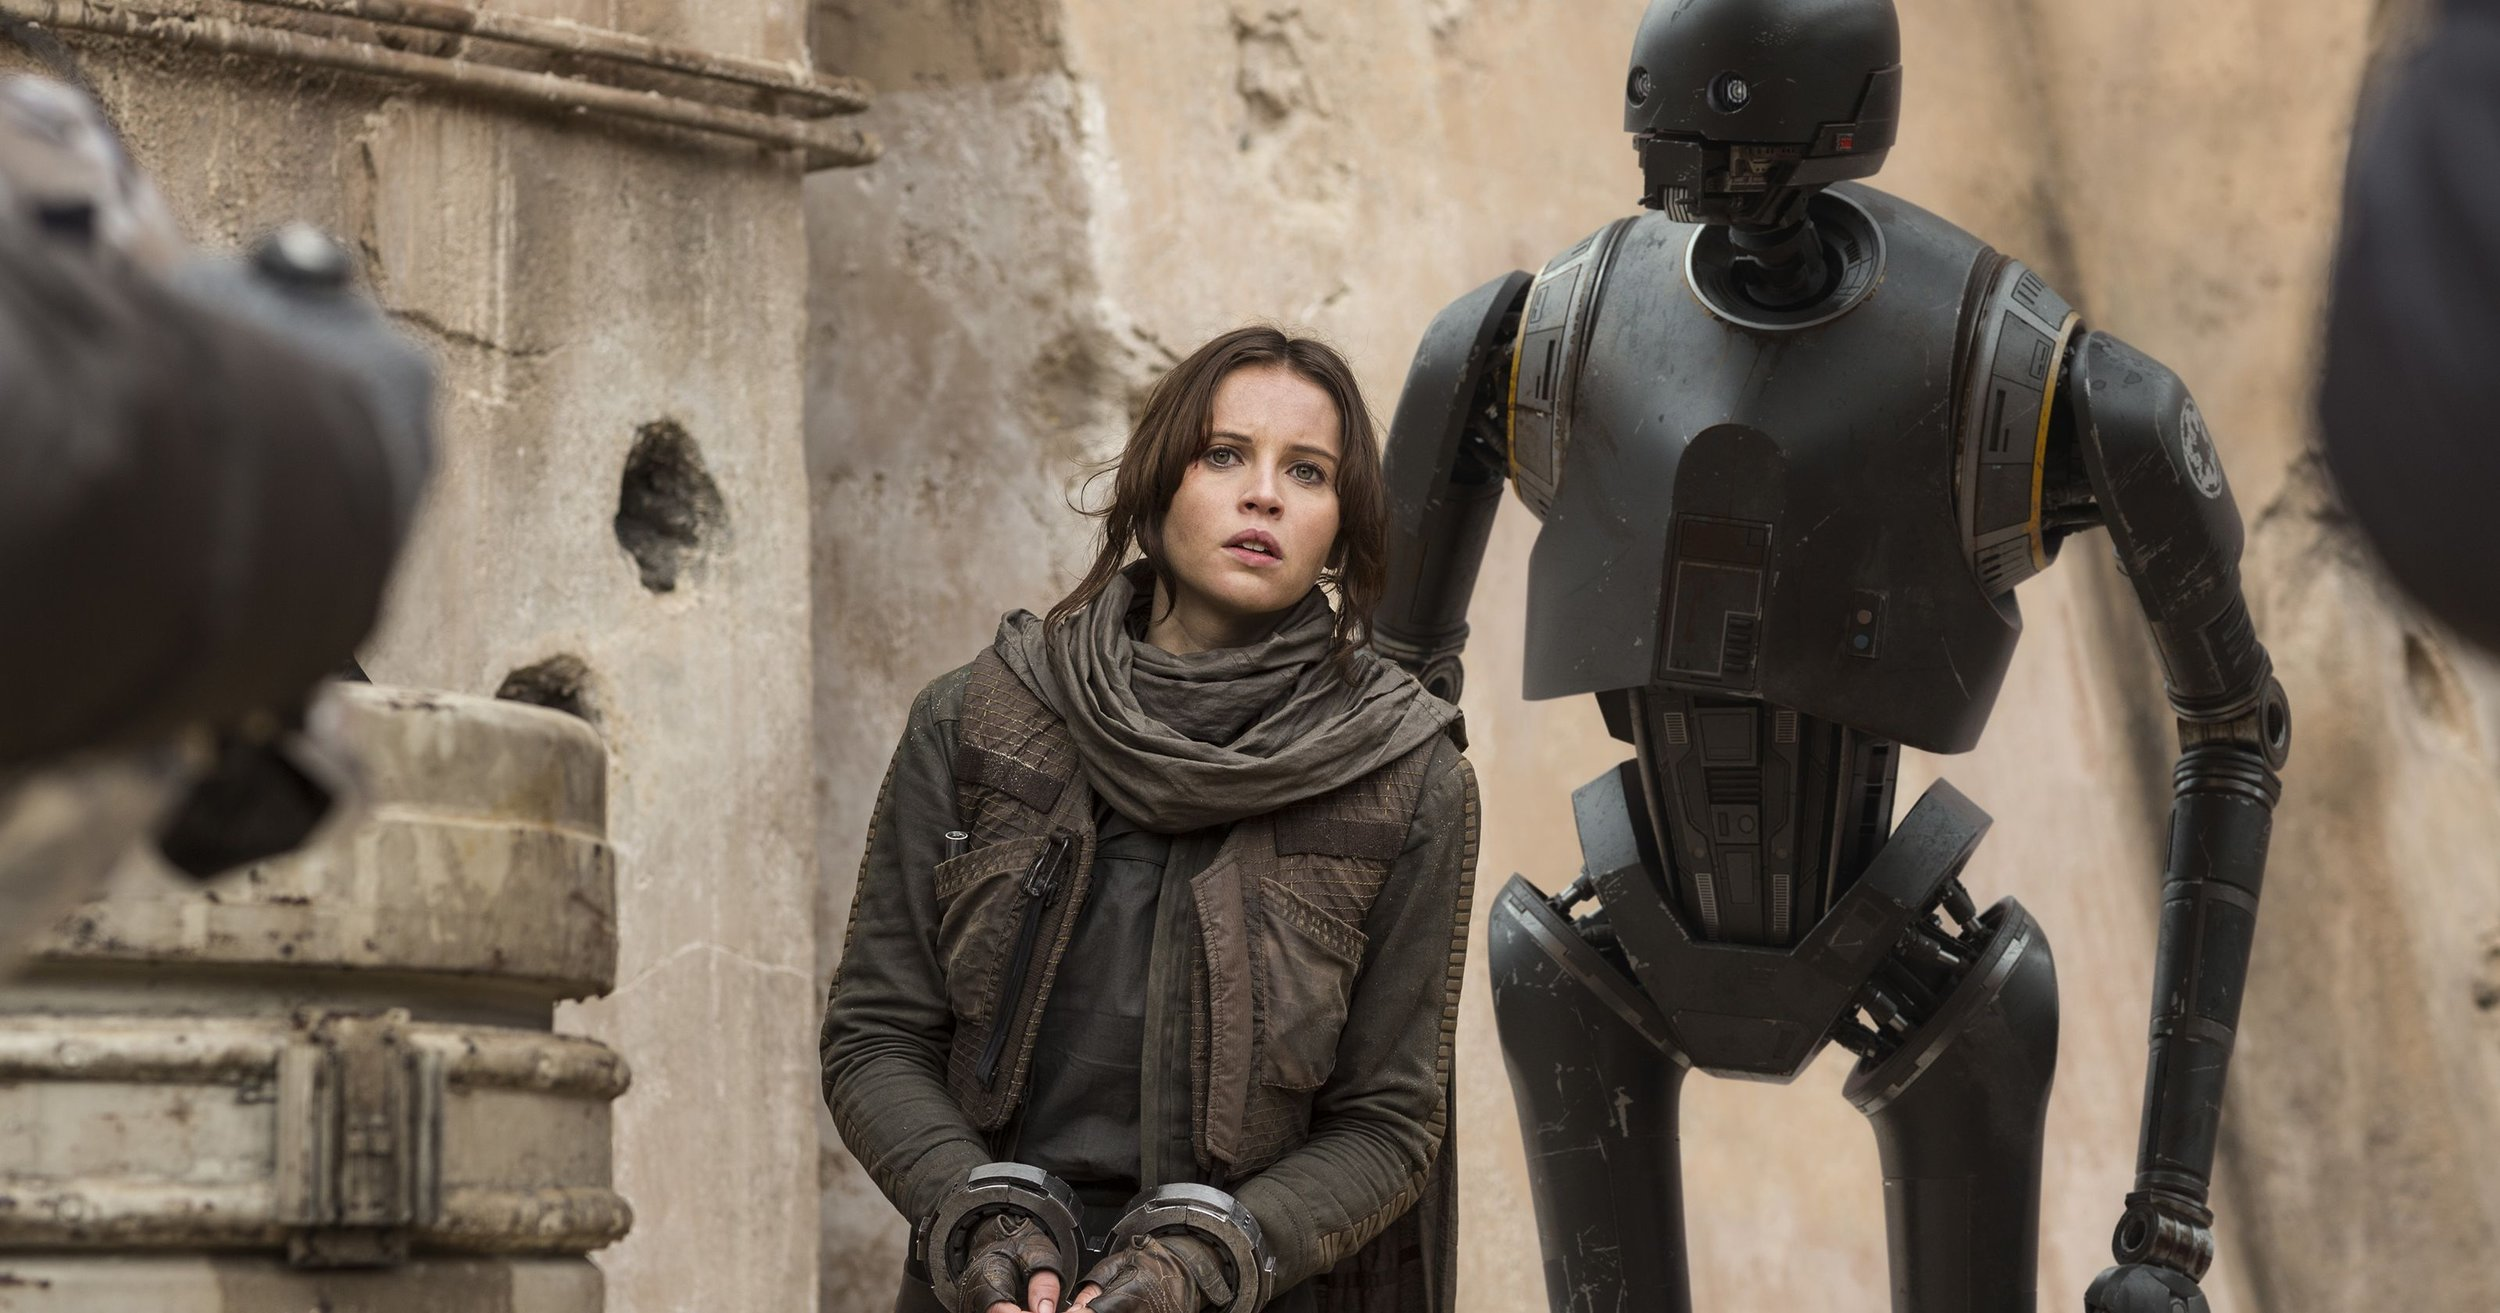 Felicity Jones (Jyn Erso) and Alan Tudyk (K-2SO) from last year's blockbuster,  Rogue One: A Star Wars Story , will both be attending Celebration Orlando to sign autographs and take photos with fans.